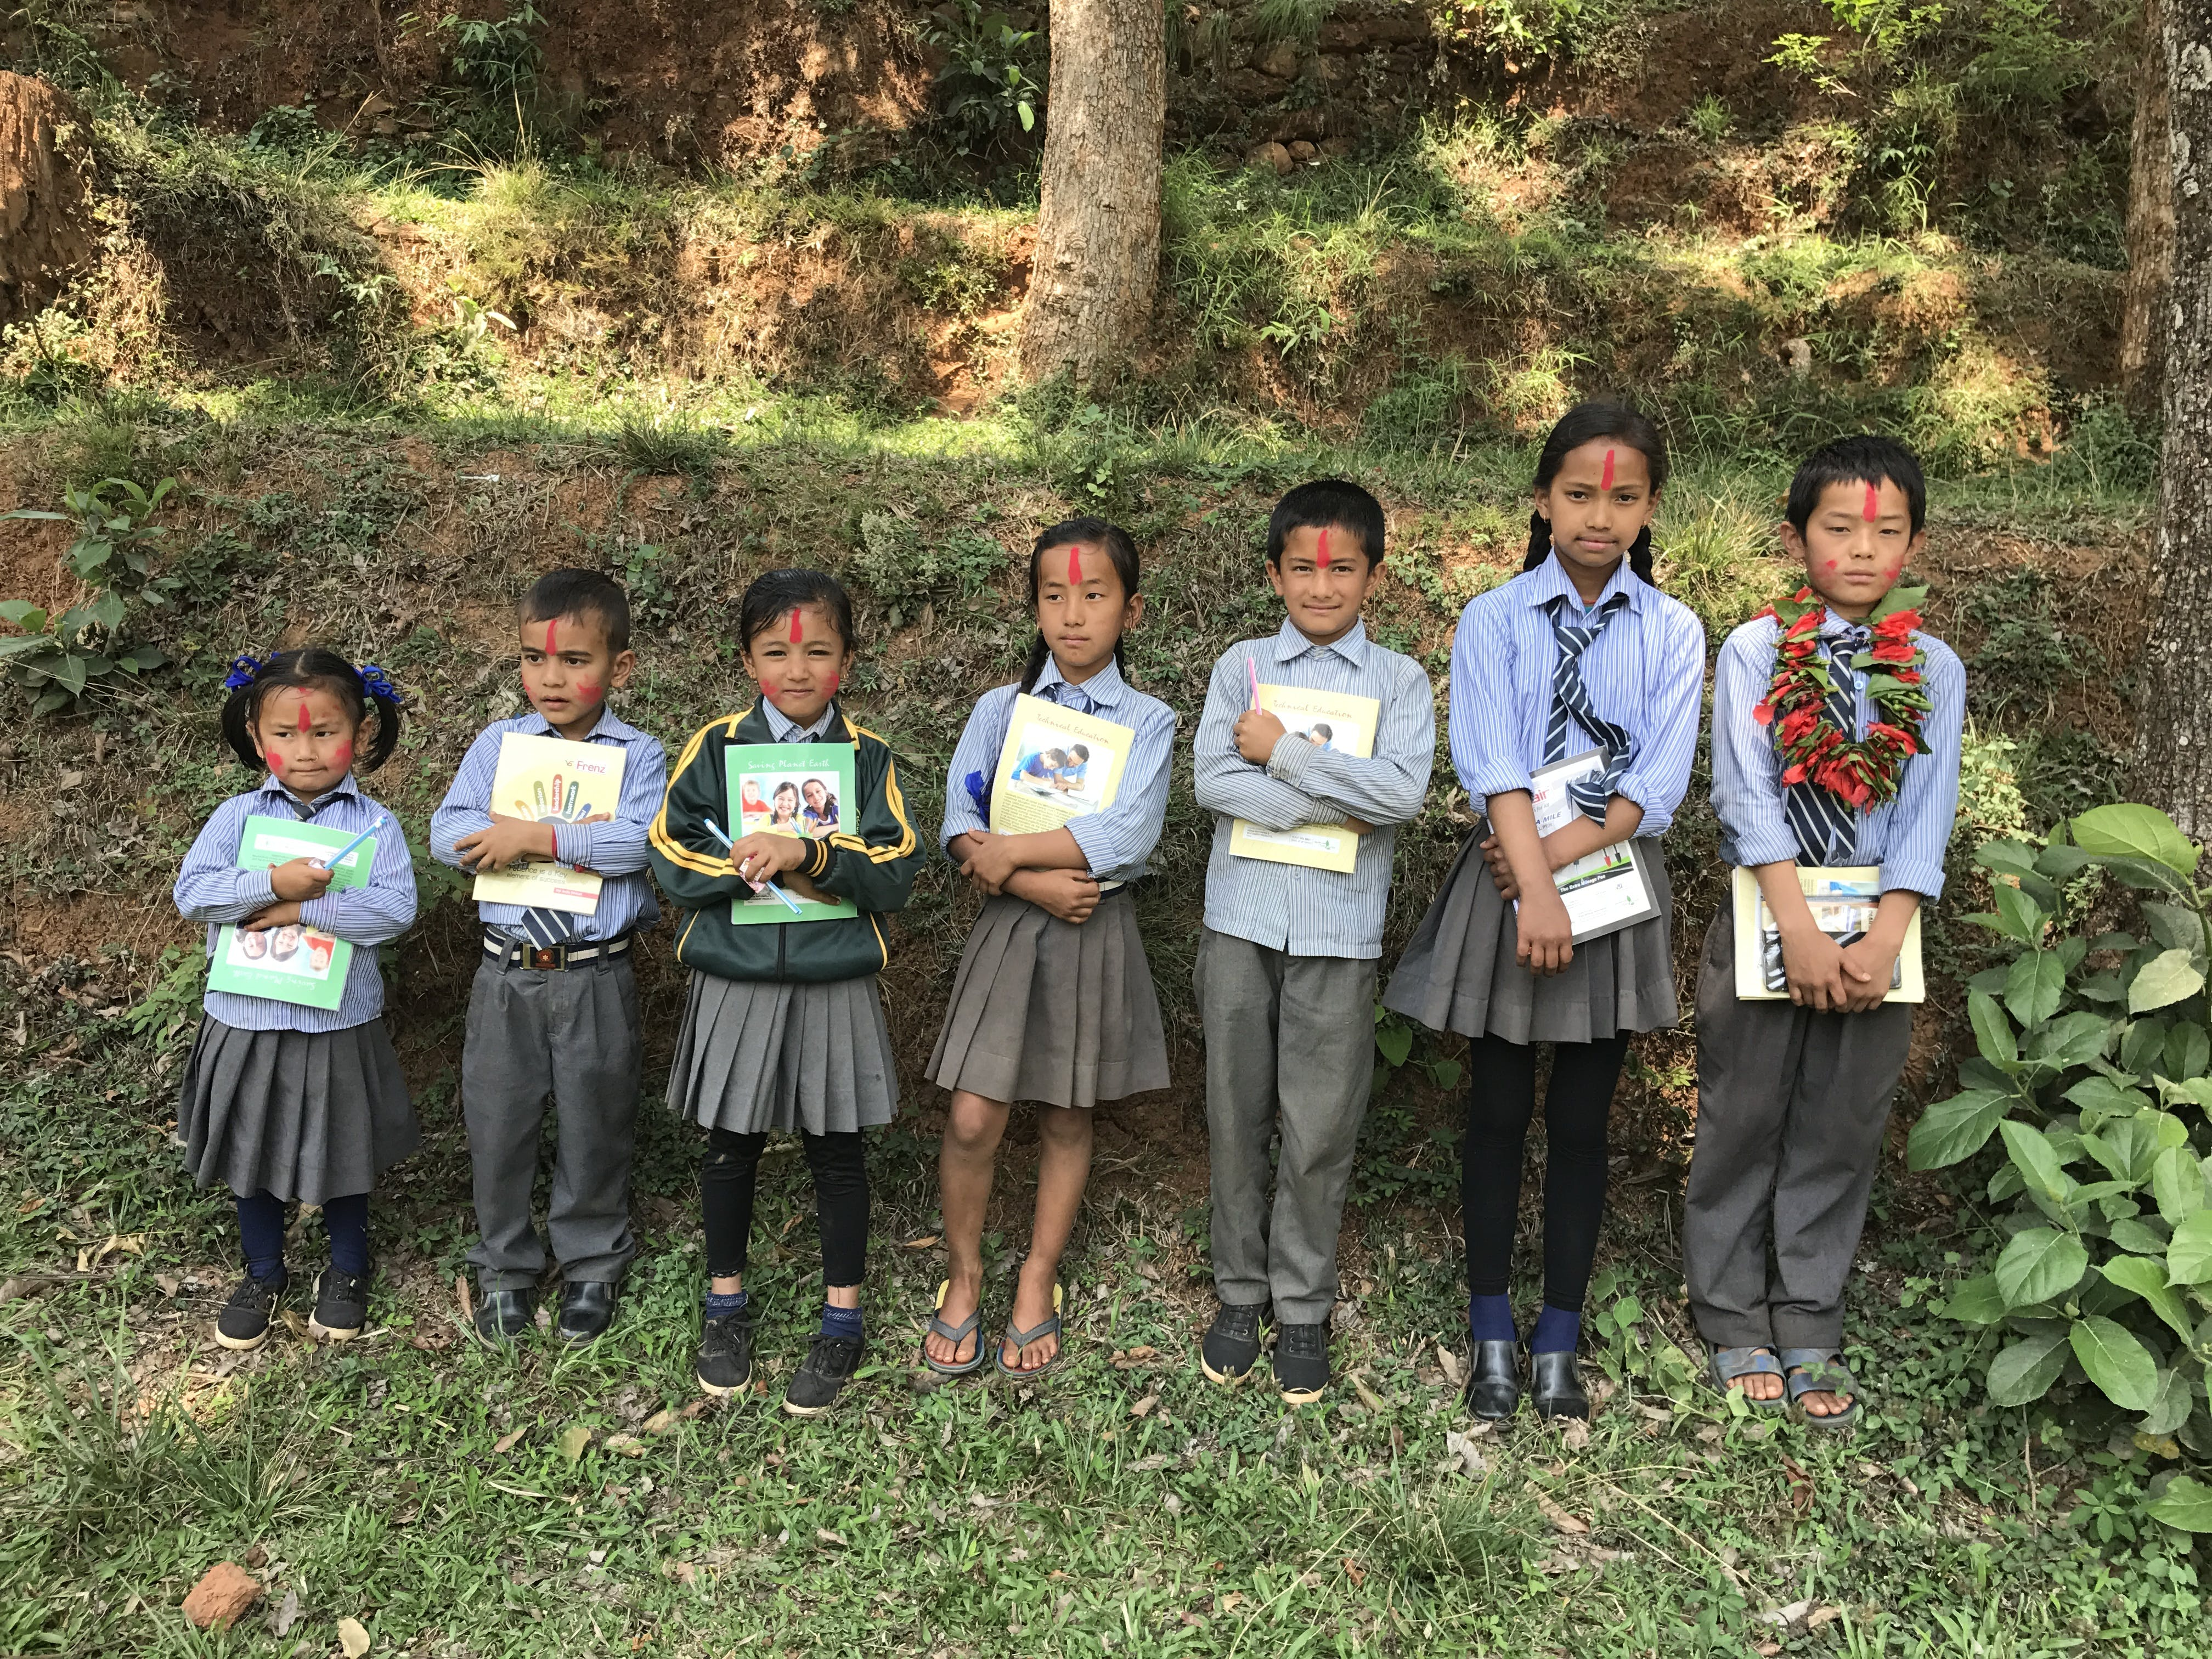 Free stock photo of Annapurna School students